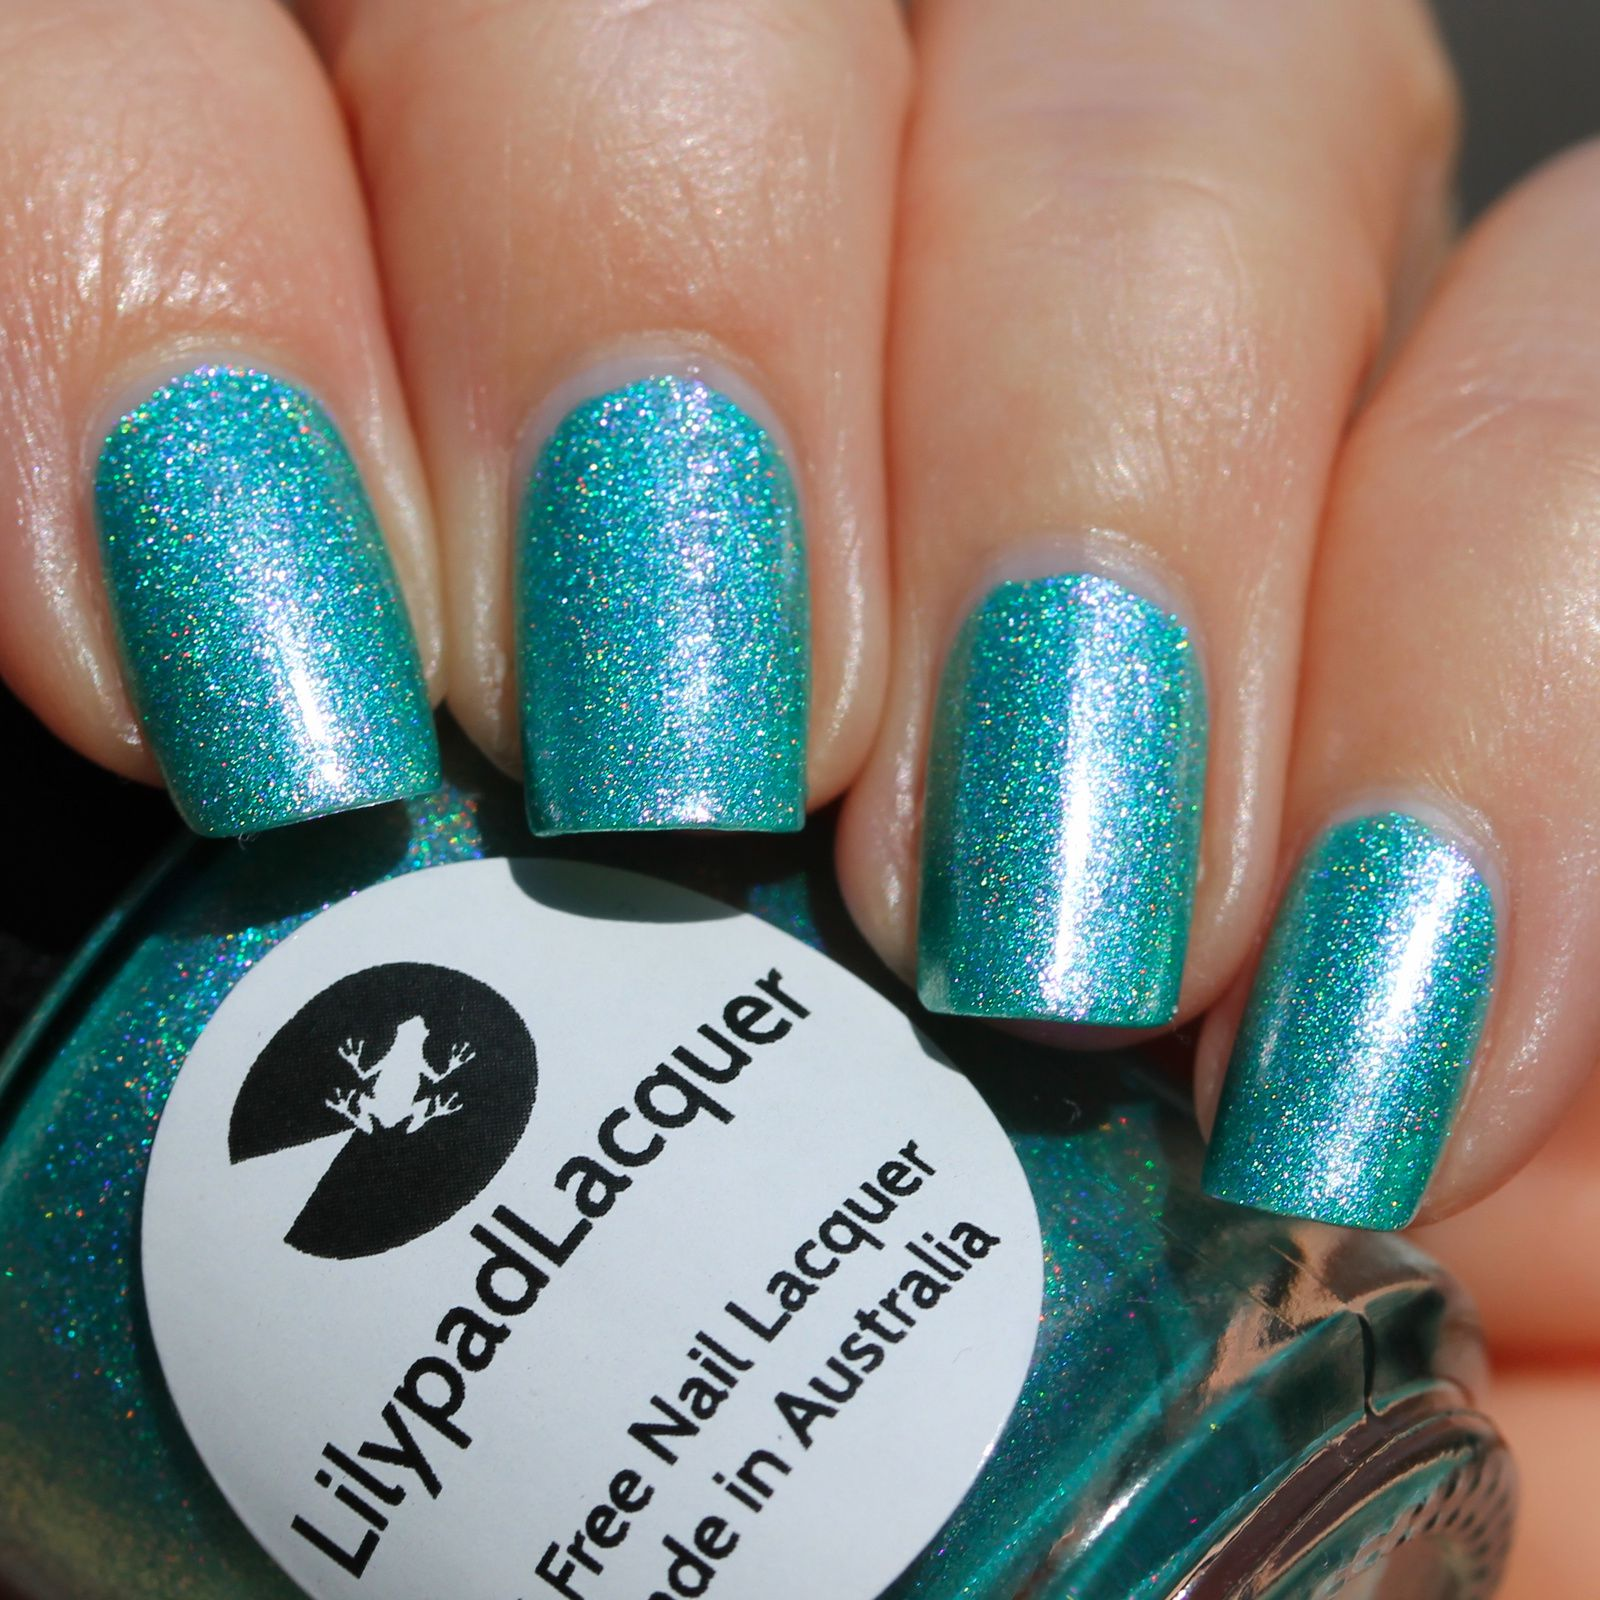 Duri Rejuvacote / Lilypad Lacquer Weird Cyance / Sally Hansen Miracle Gel Top Coat